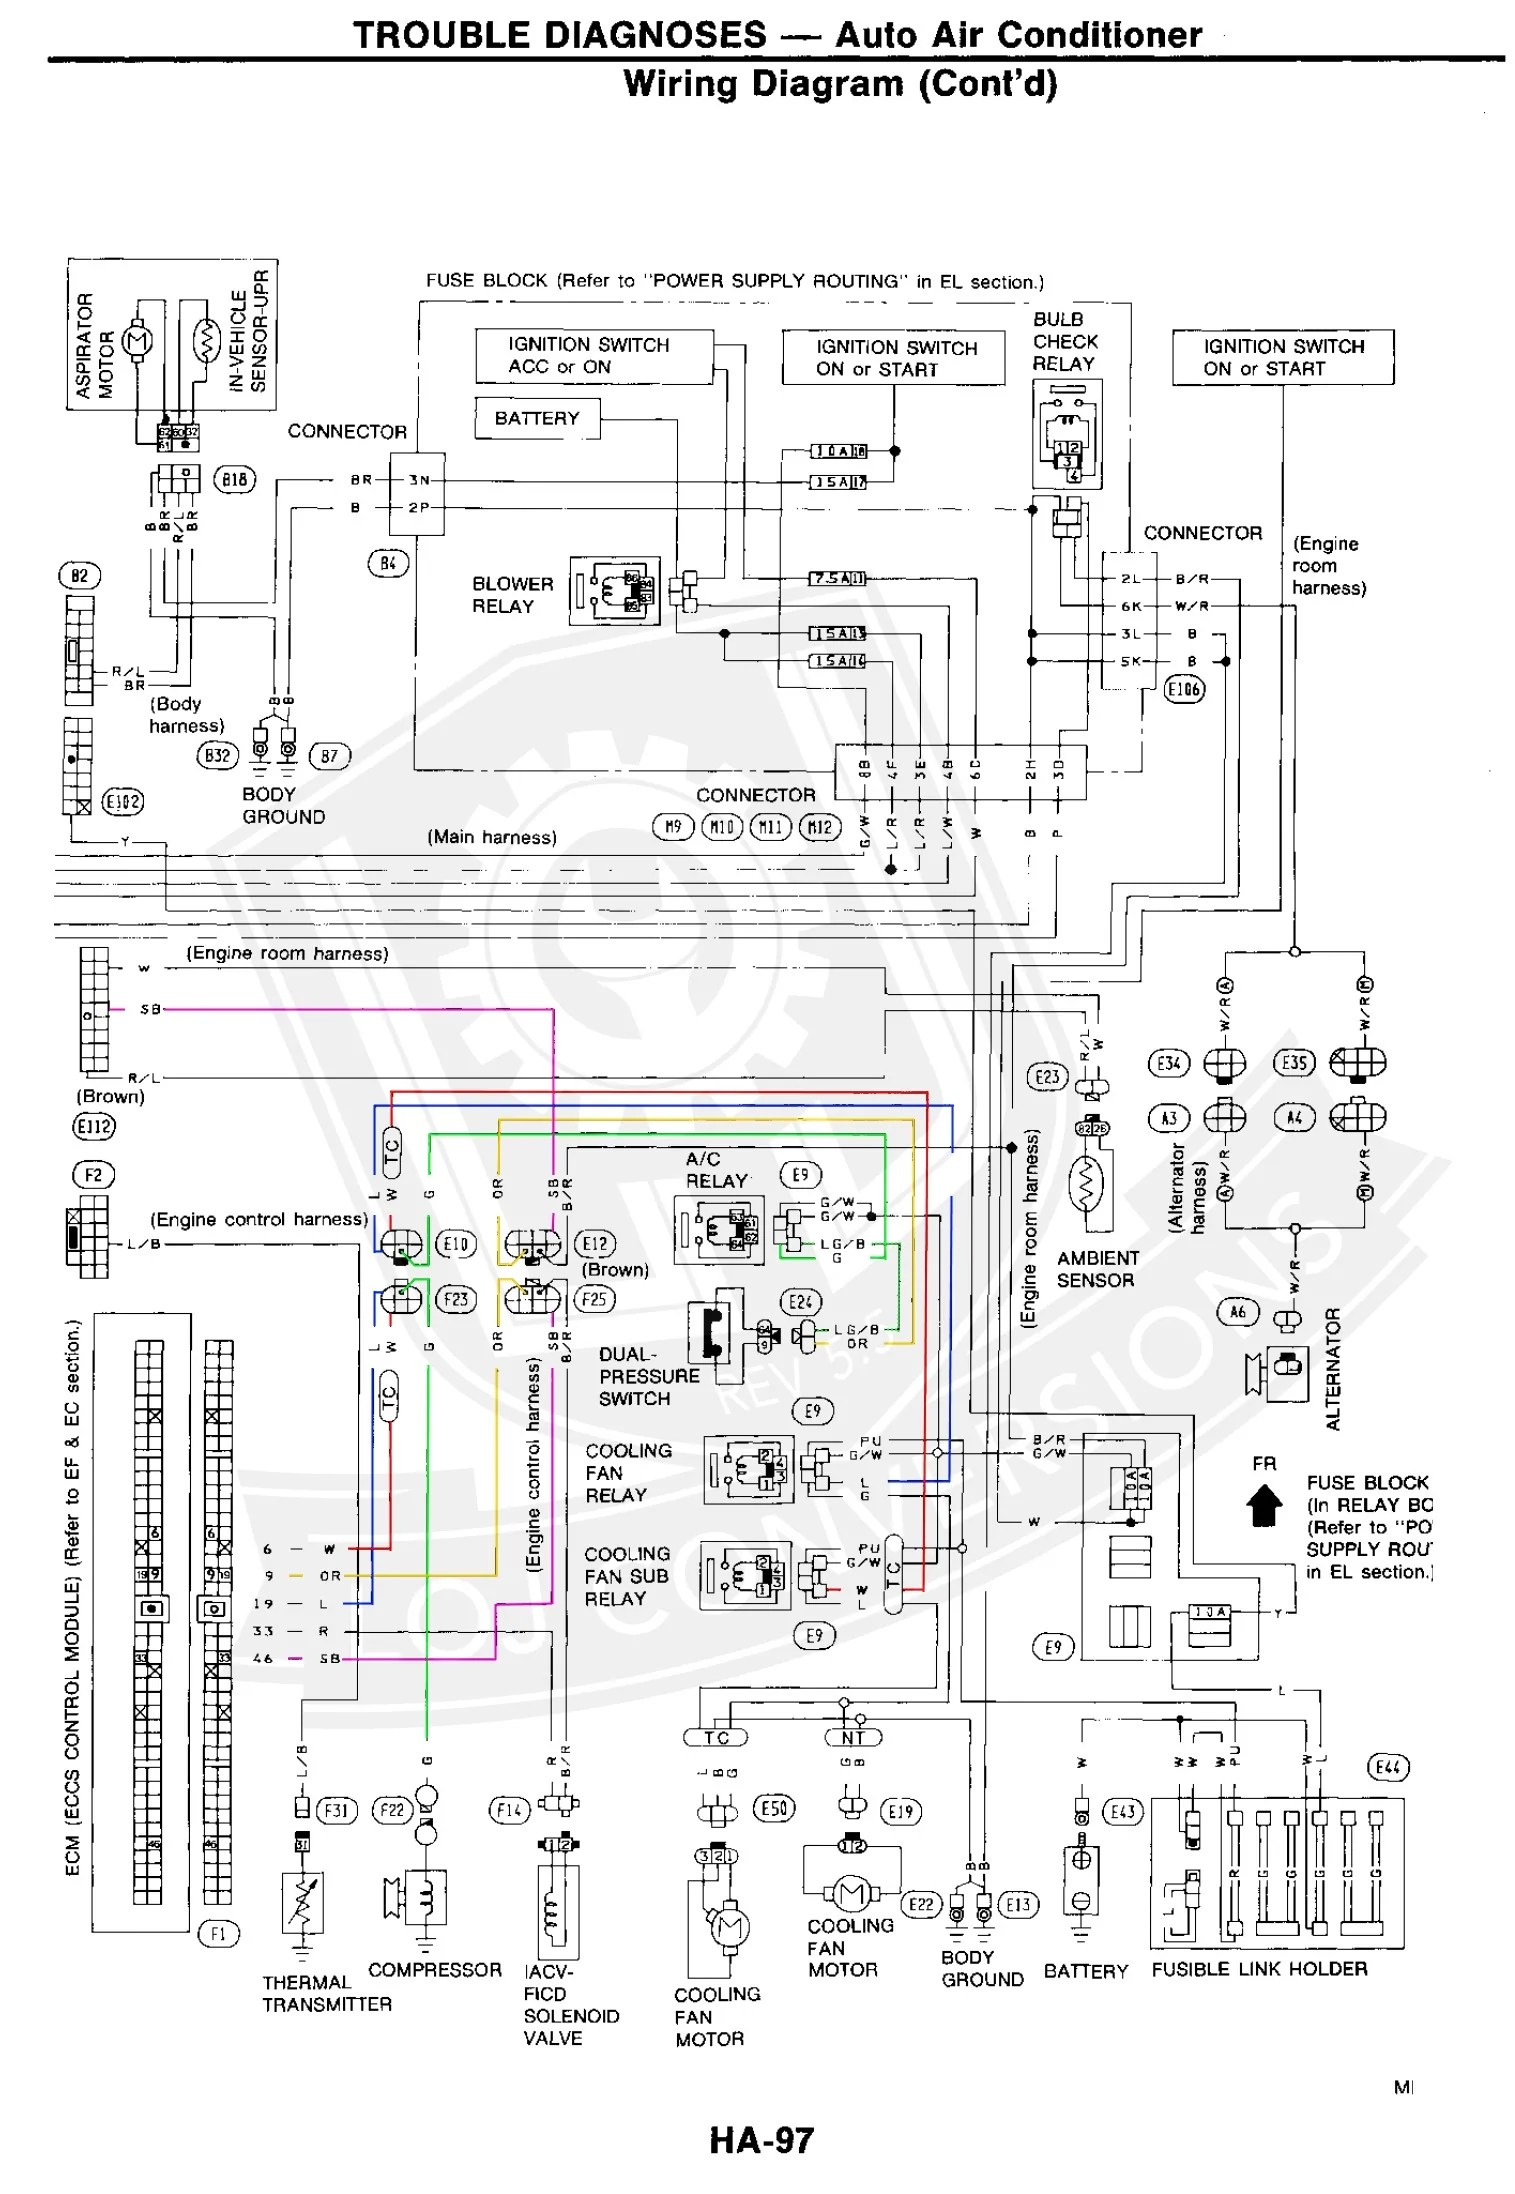 hight resolution of 1977 280z fuse box wiring diagram centre280z engine diagrams wiring diagram1977 280z fuse box wiring diagram1977